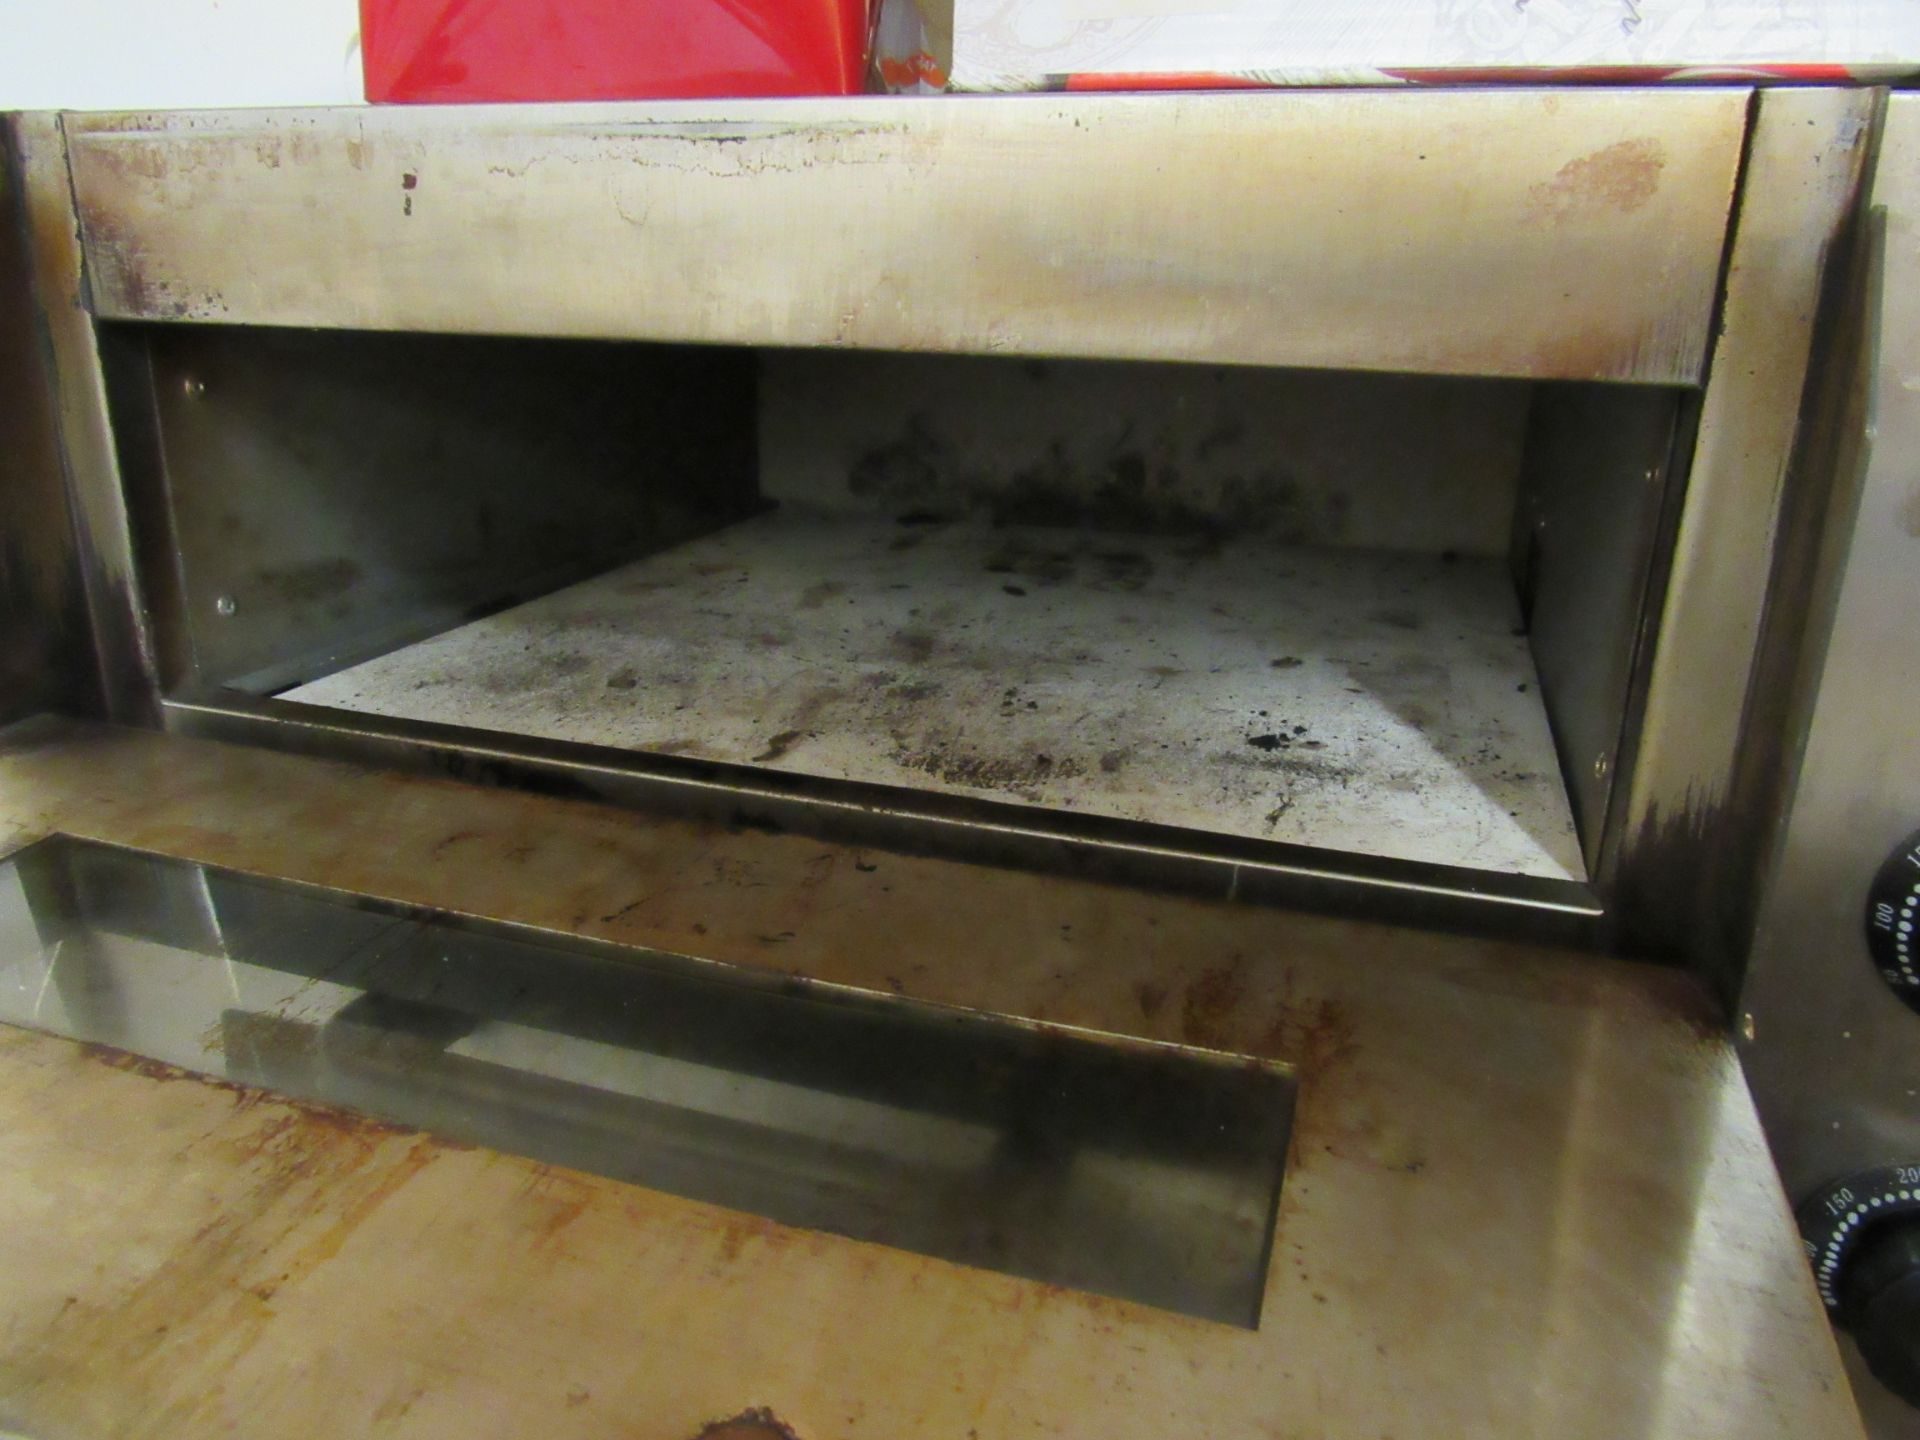 Electric Pizza Oven, P2PT 560x566x400mm - Image 4 of 5